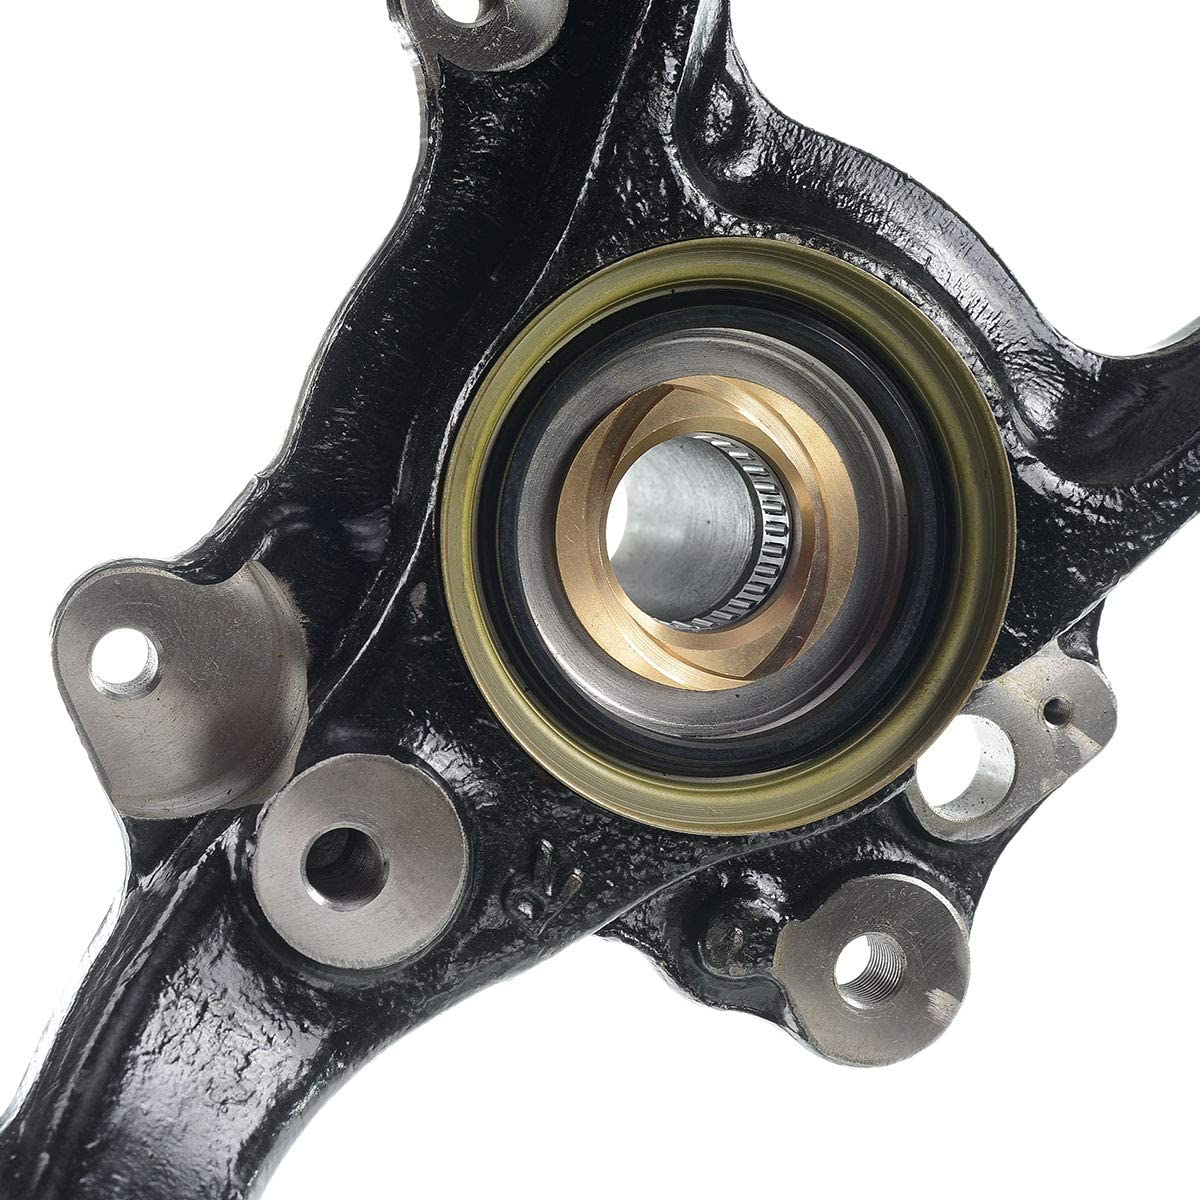 A-Premium Steering Knuckle Replacement for Lexus LX470 Toyota Land Cruiser 1998-2007 Front Left